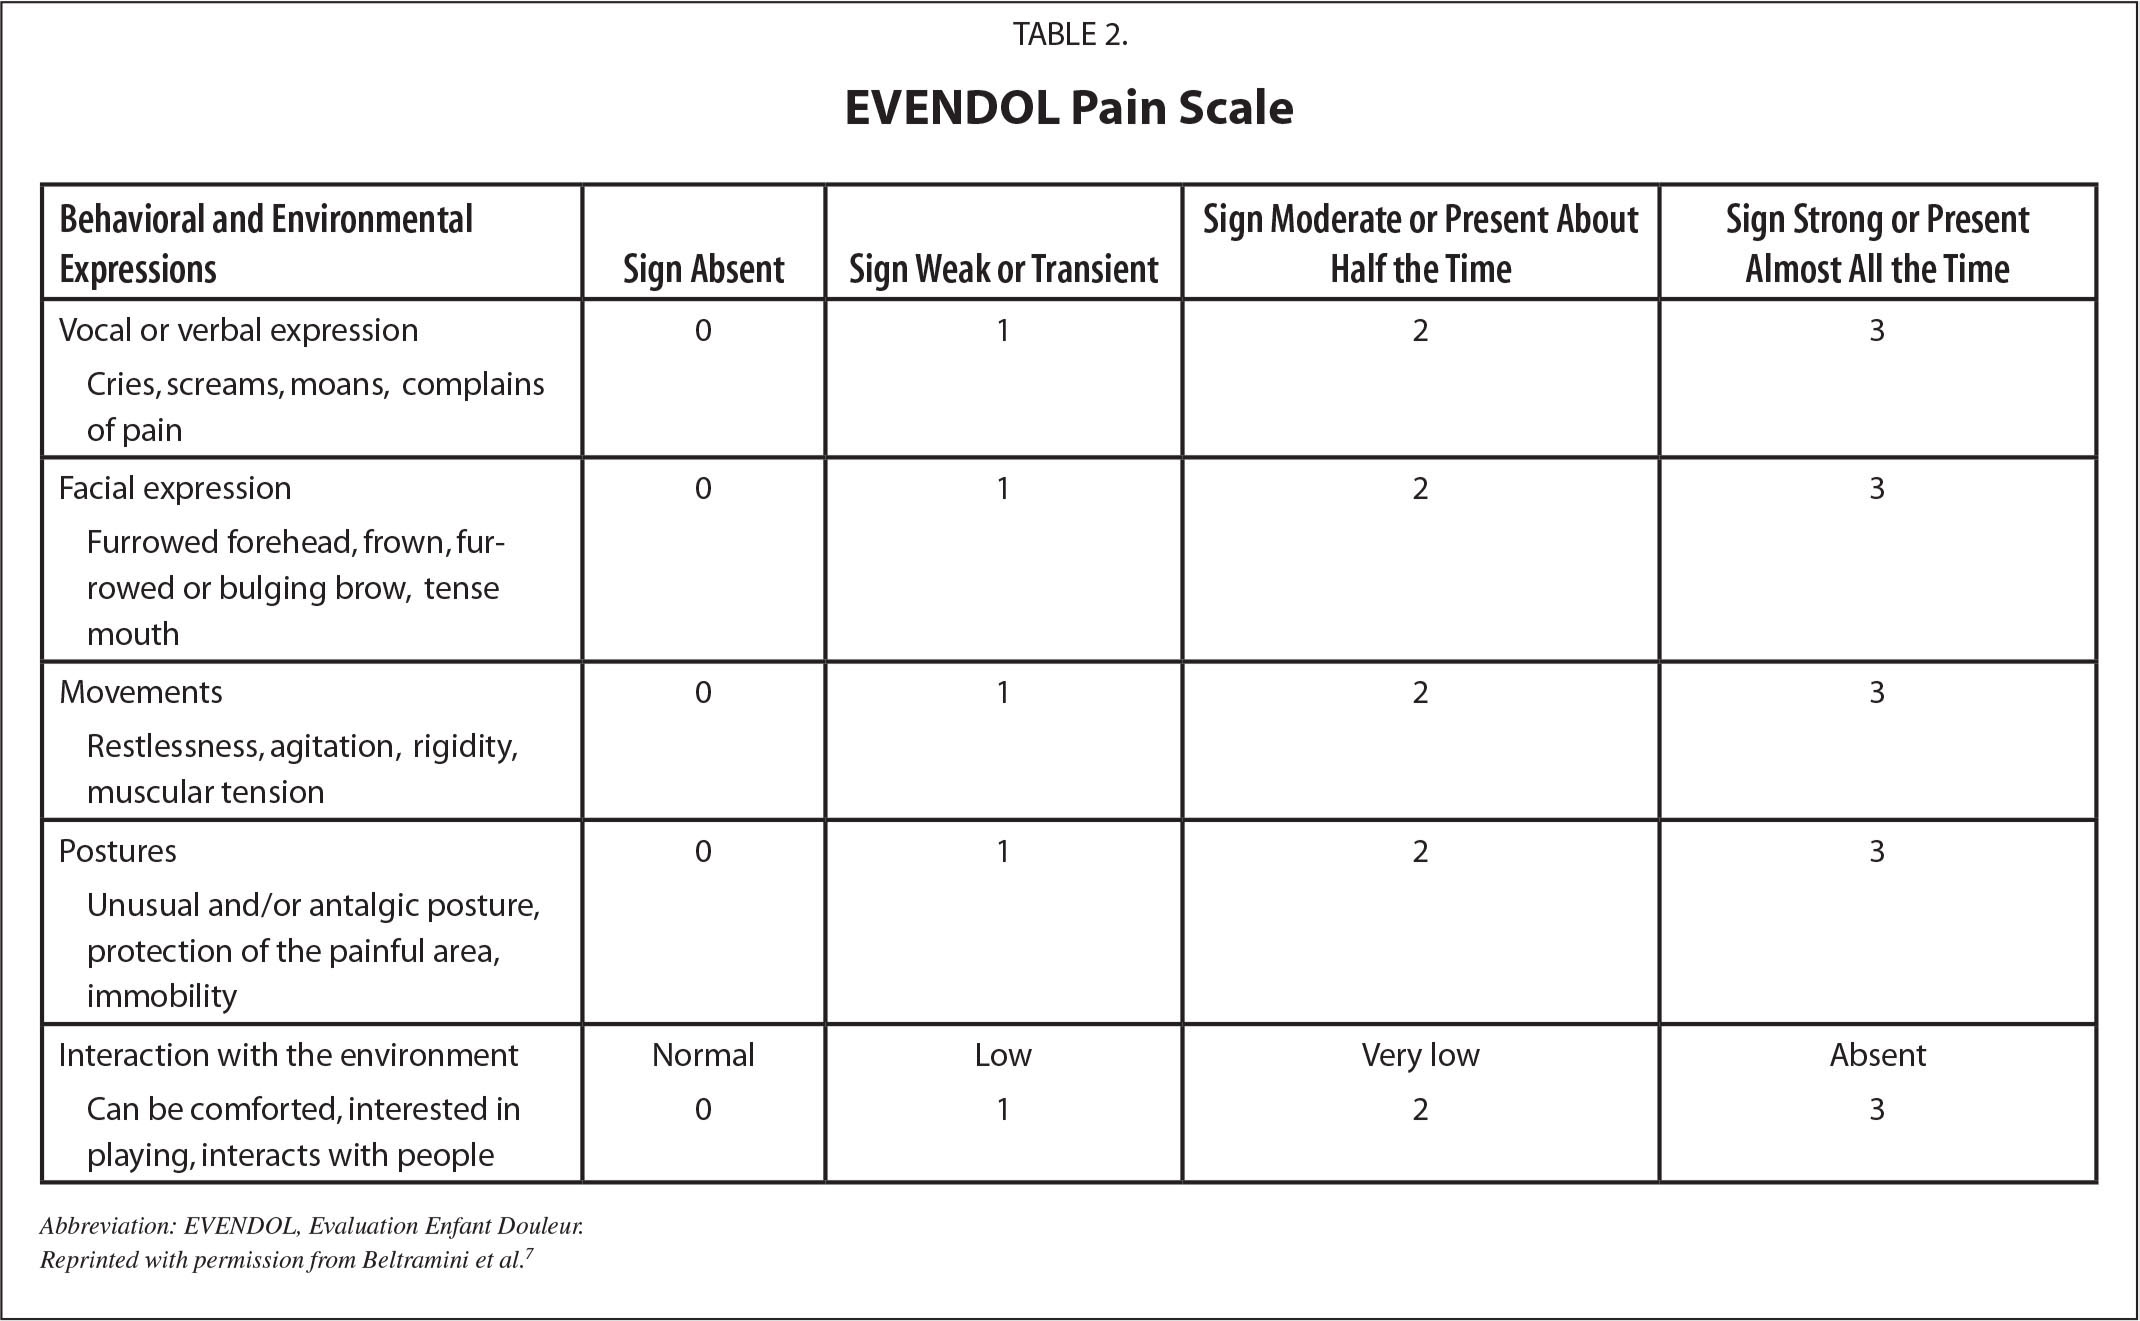 EVENDOL Pain Scale